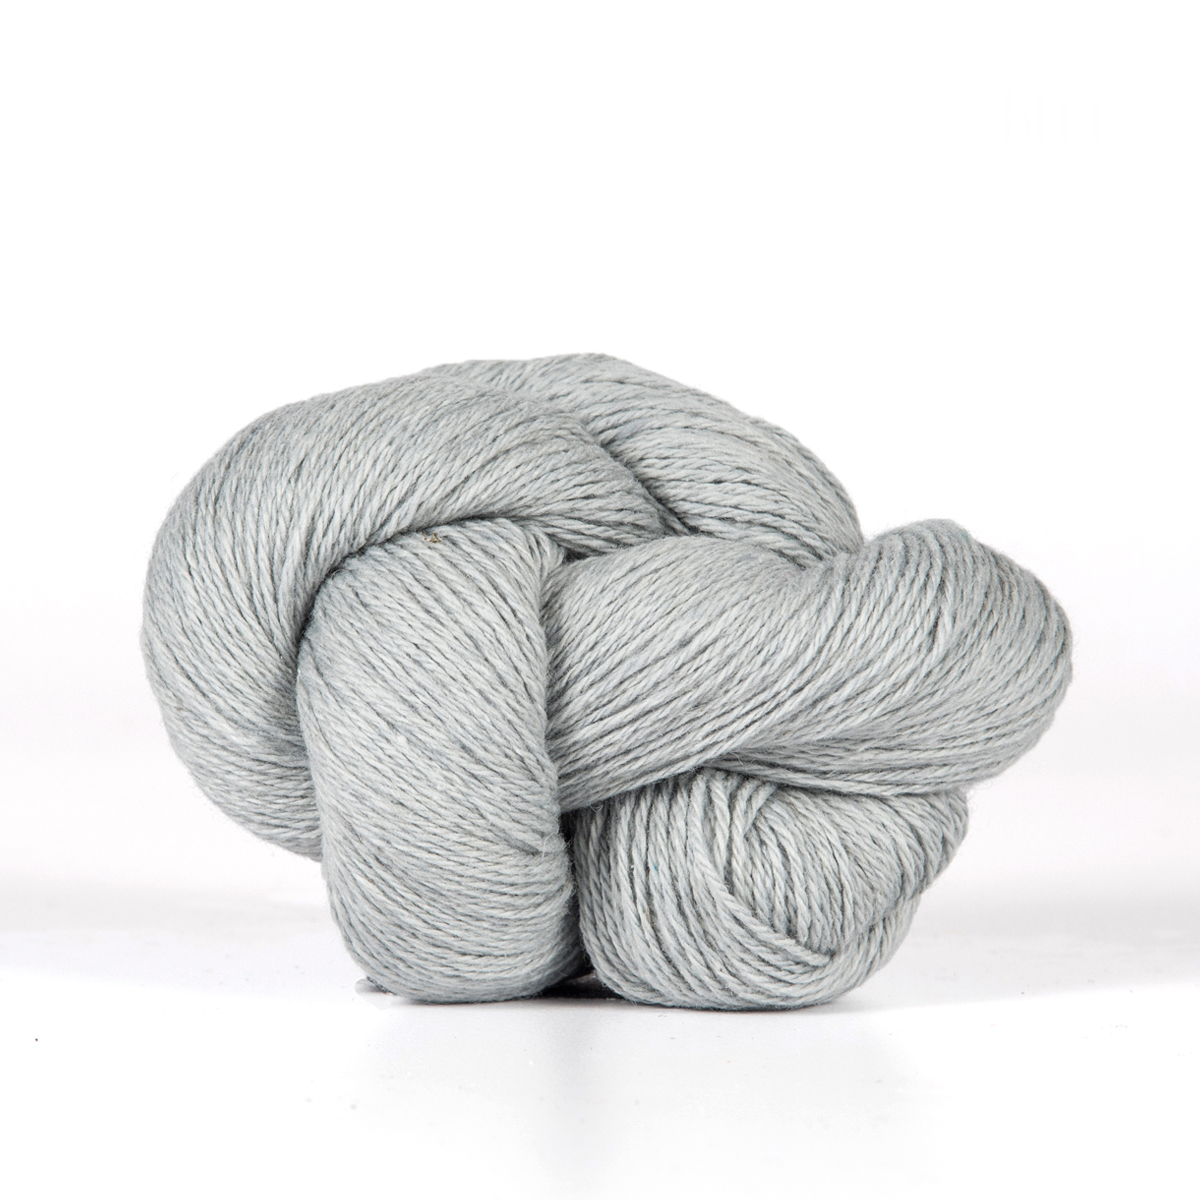 BIO BALANCE /       55% Organic Wool, 45% Organic Cotton  246 yds (225 m) / 50 gm hank